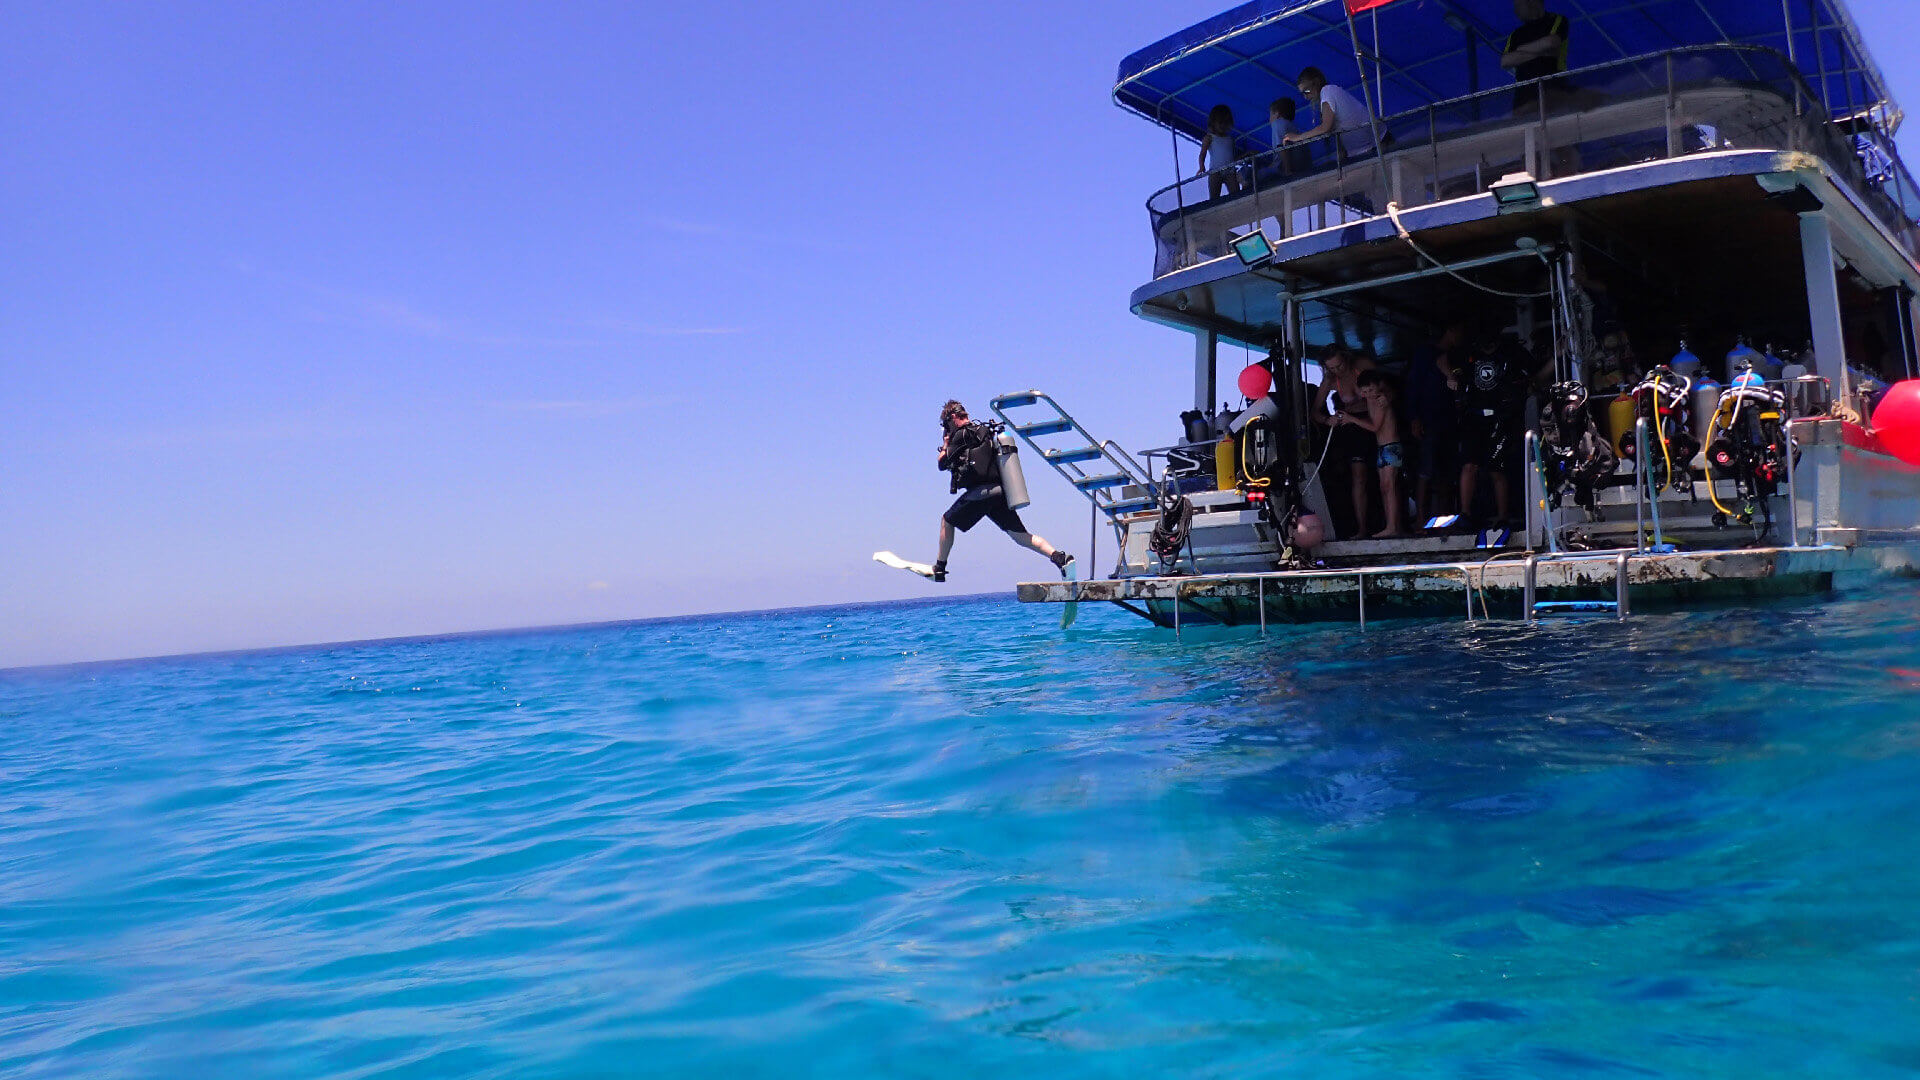 Scuba Diving New Normal For Phuket